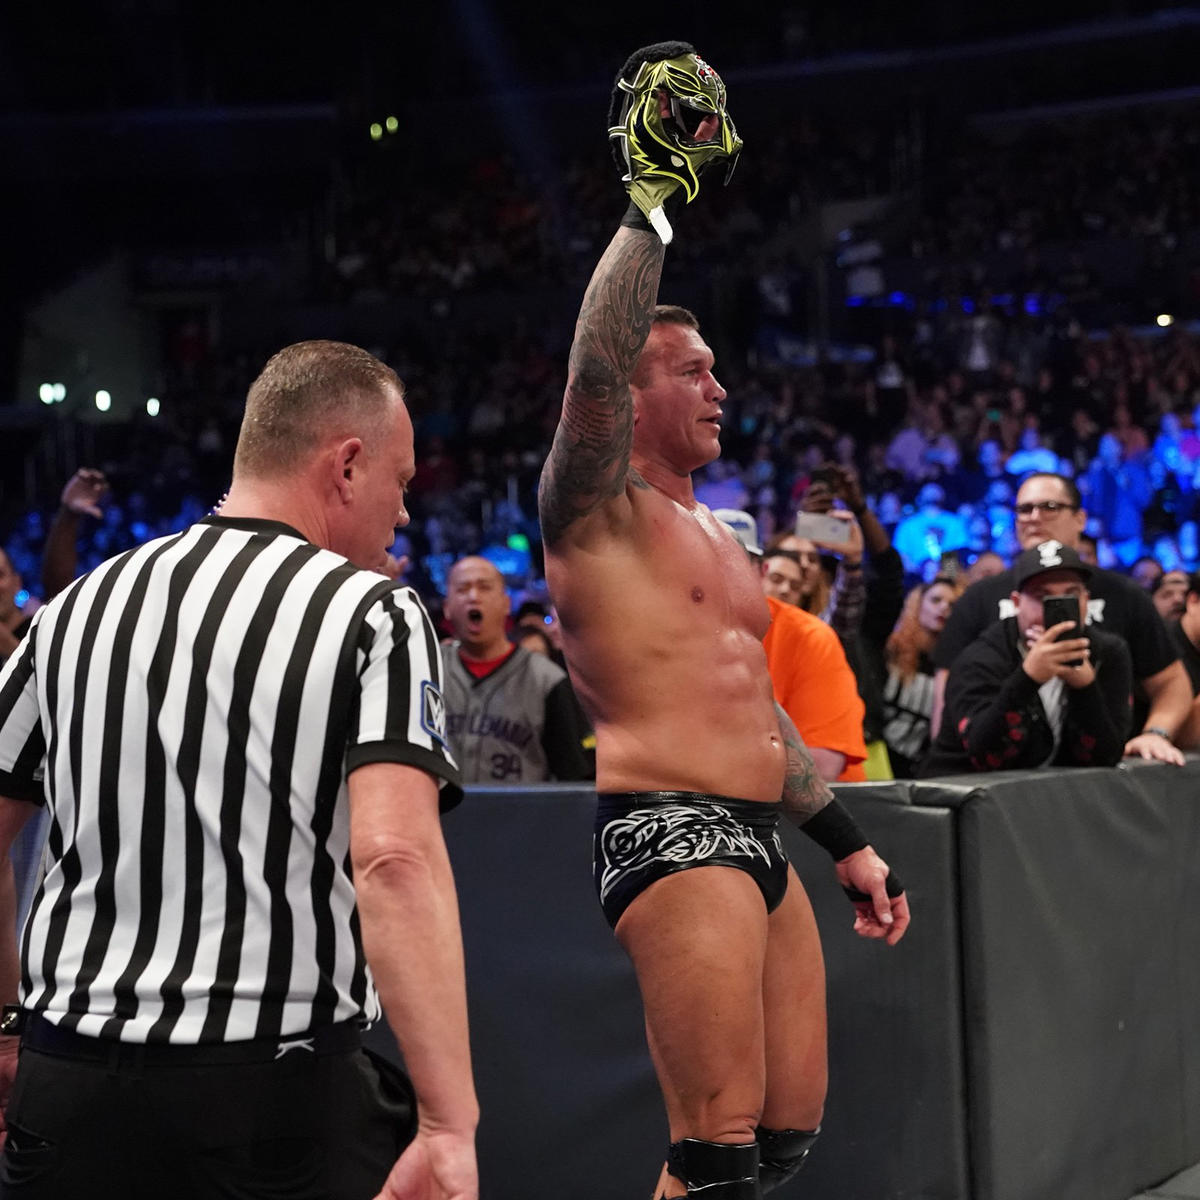 Orton steals Mysterio's mask as SmackDown LIVE concludes.